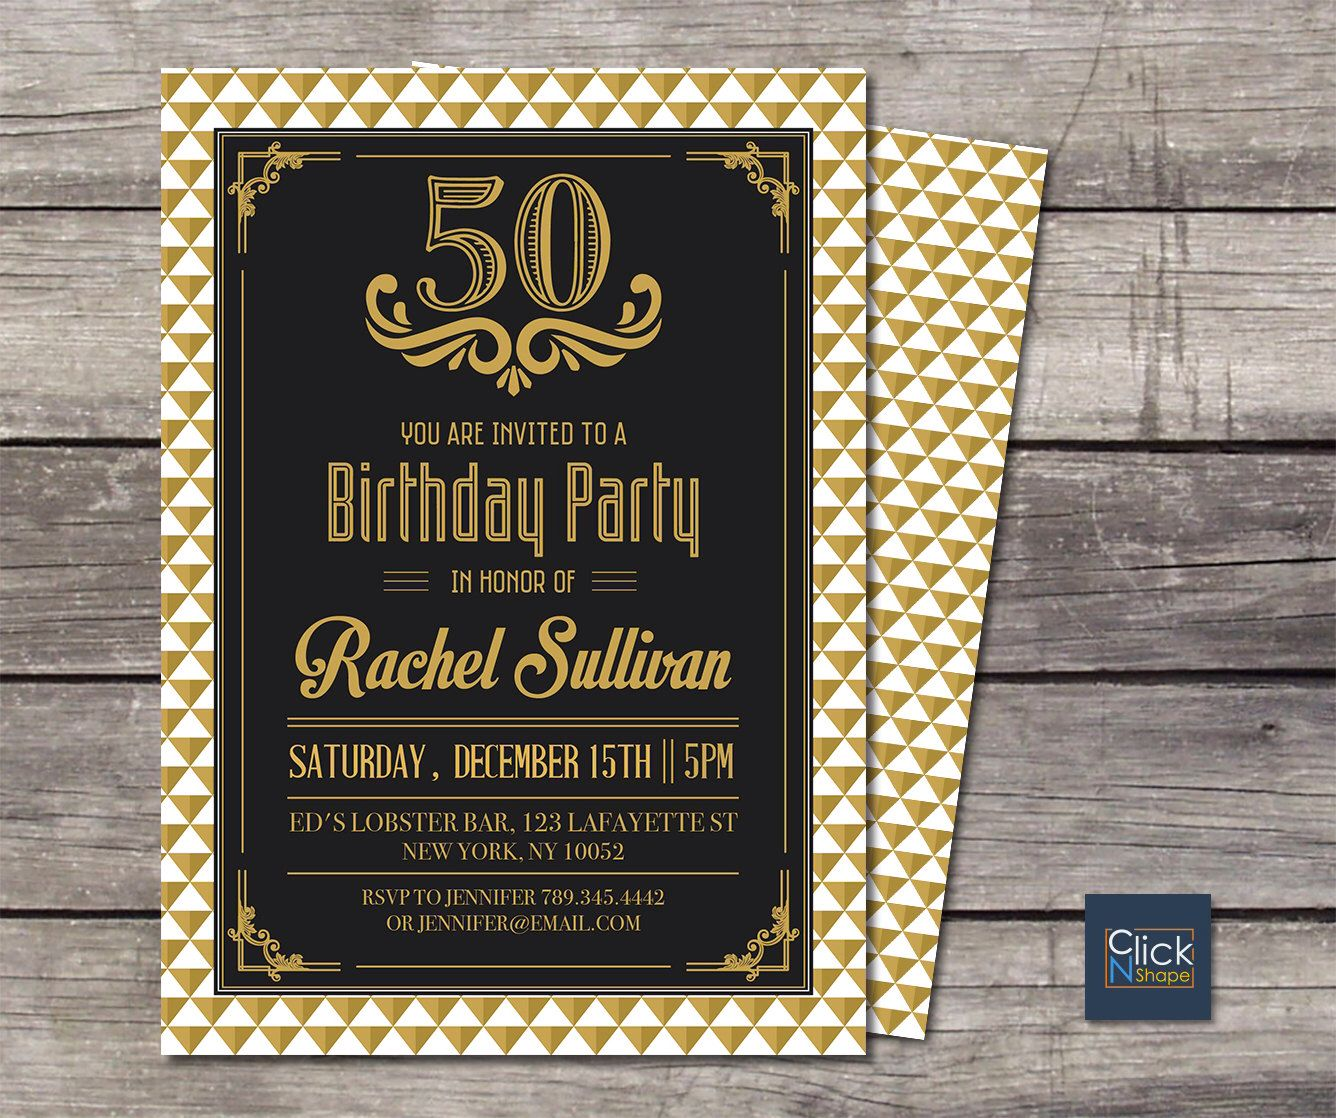 40th 50th 60th 70th birthday invitation adult party invitation 40th 50th 60th 70th birthday invitation adult party invitation filmwisefo Images